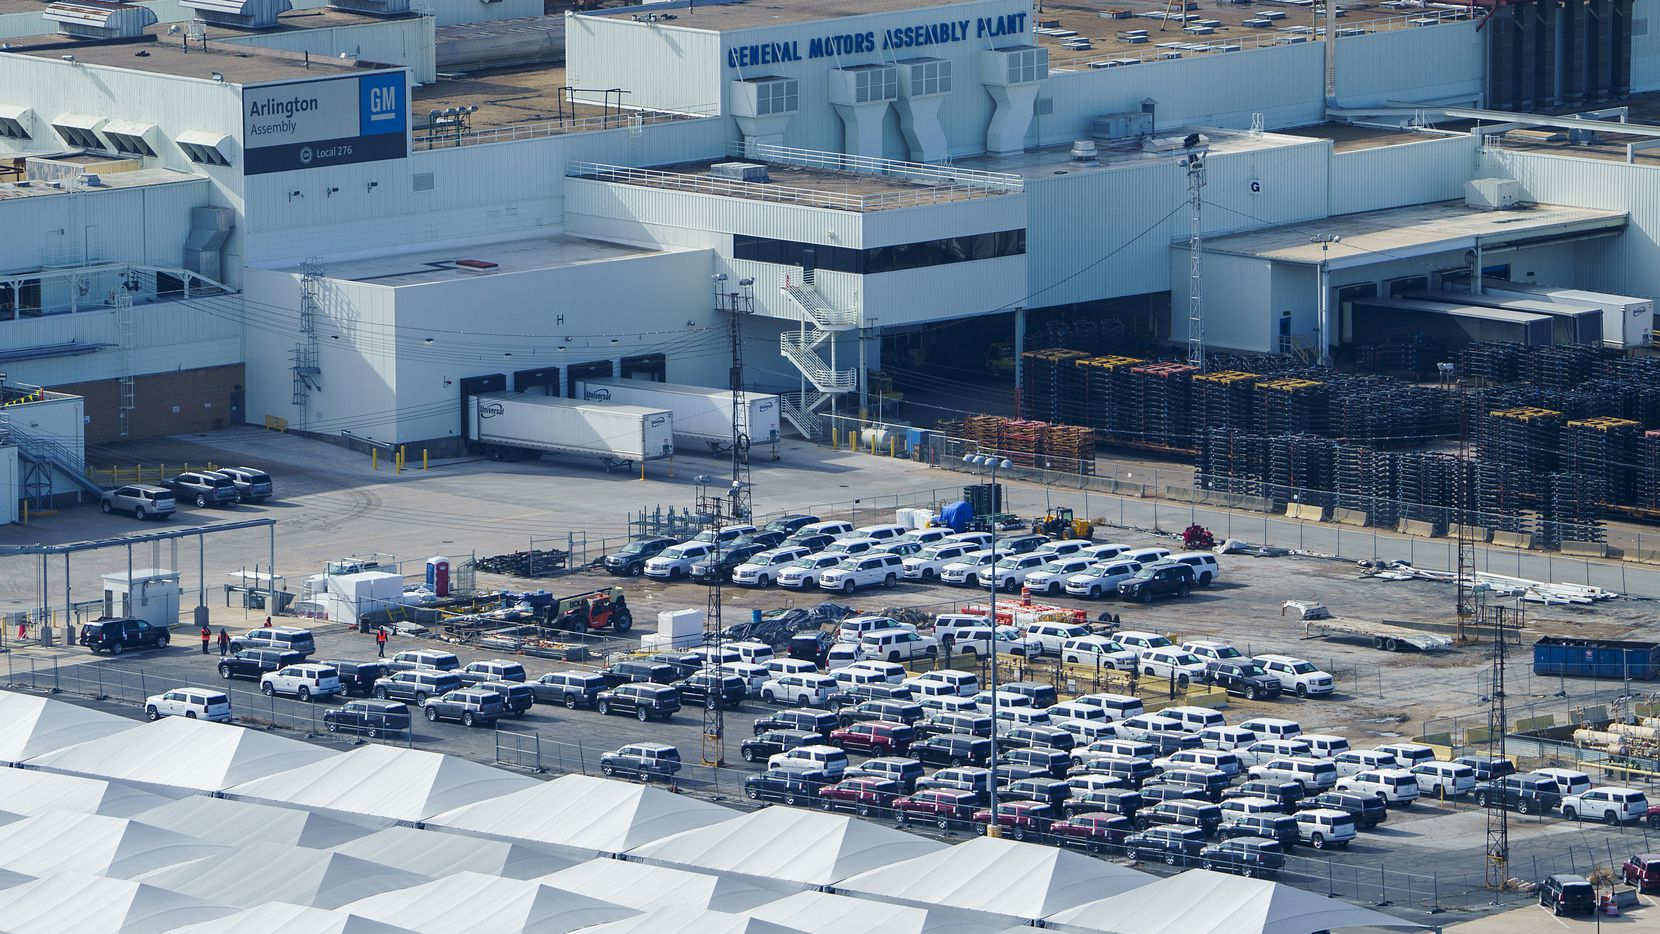 Aerial view of the General Motors Assembly Plant in Arlington.